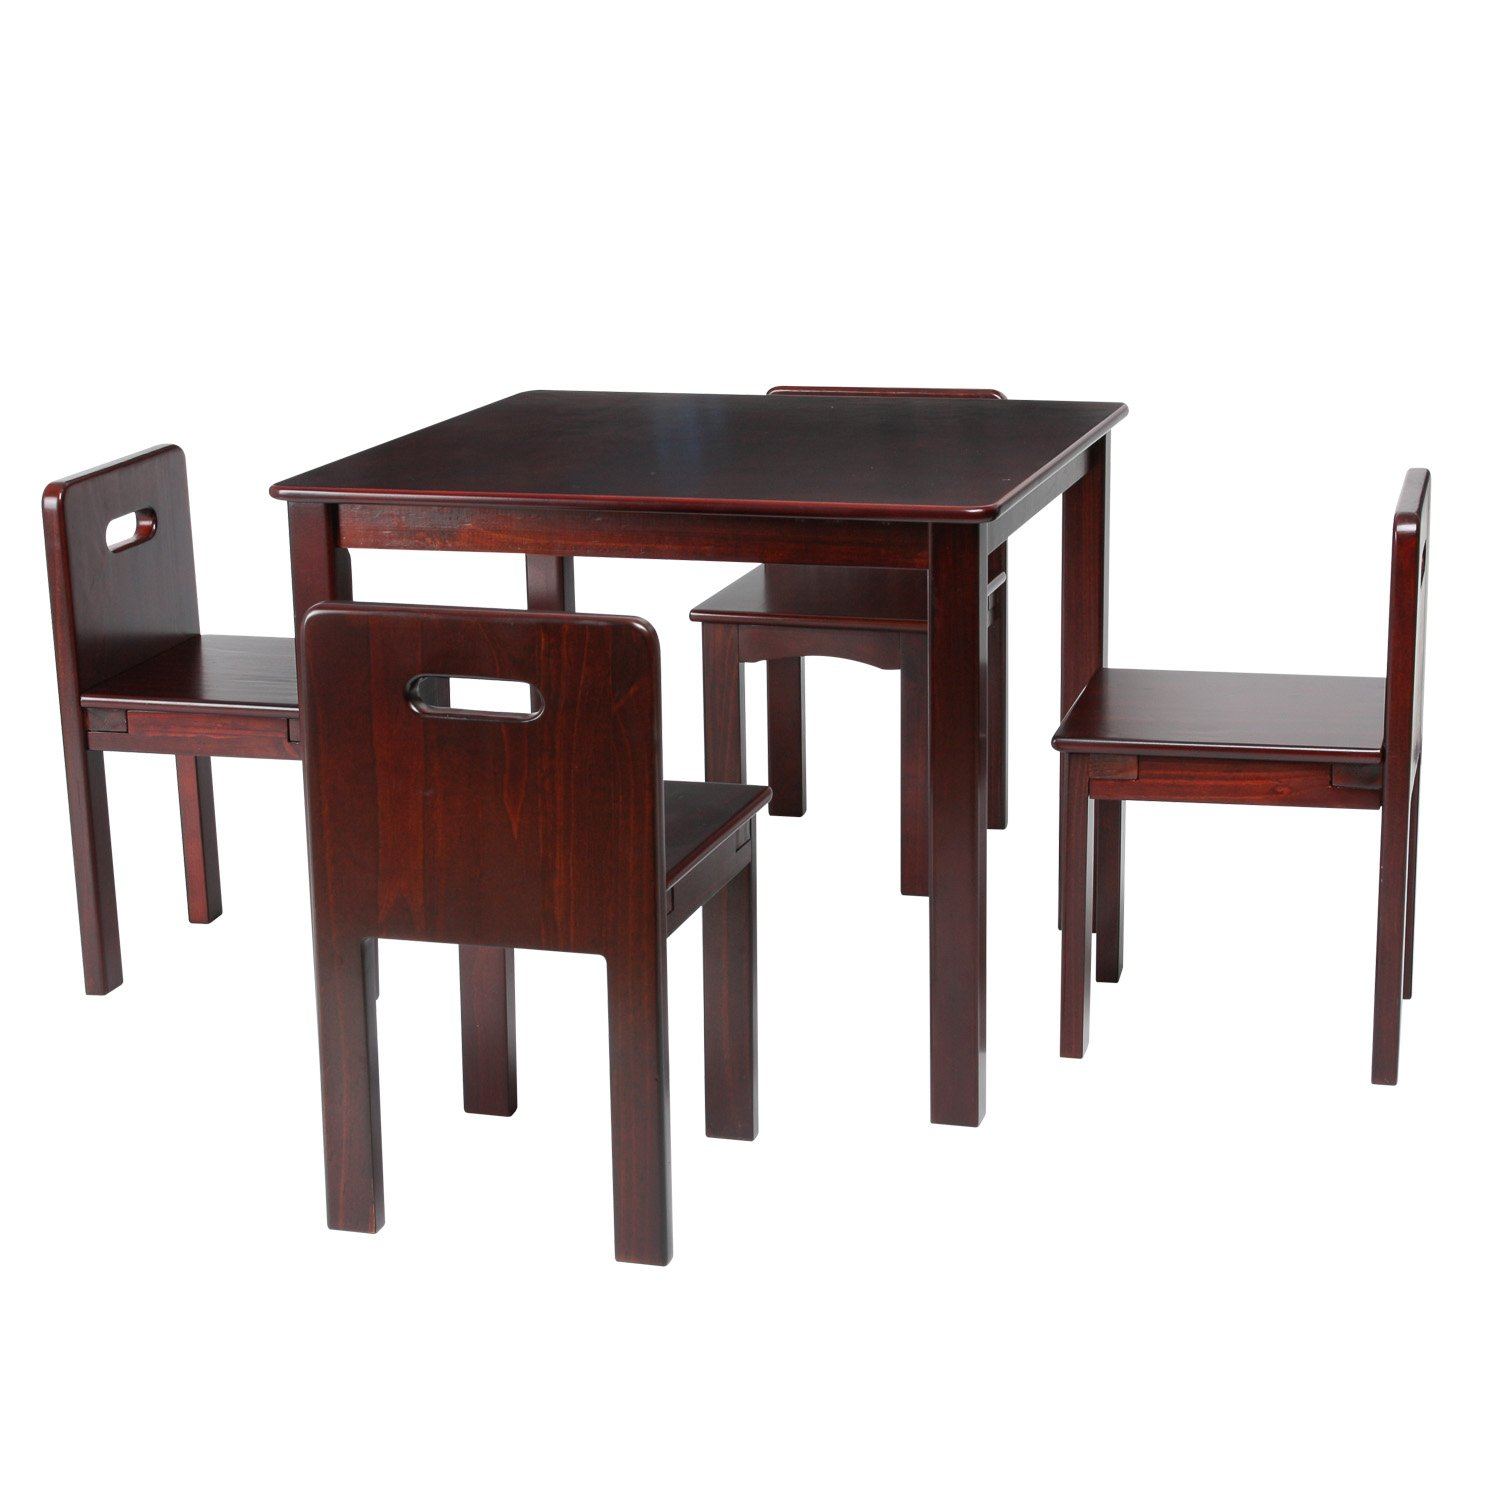 Max & Lily Espresso Wood Kid and Toddler Square Table Set with 4 Espresso Chairs